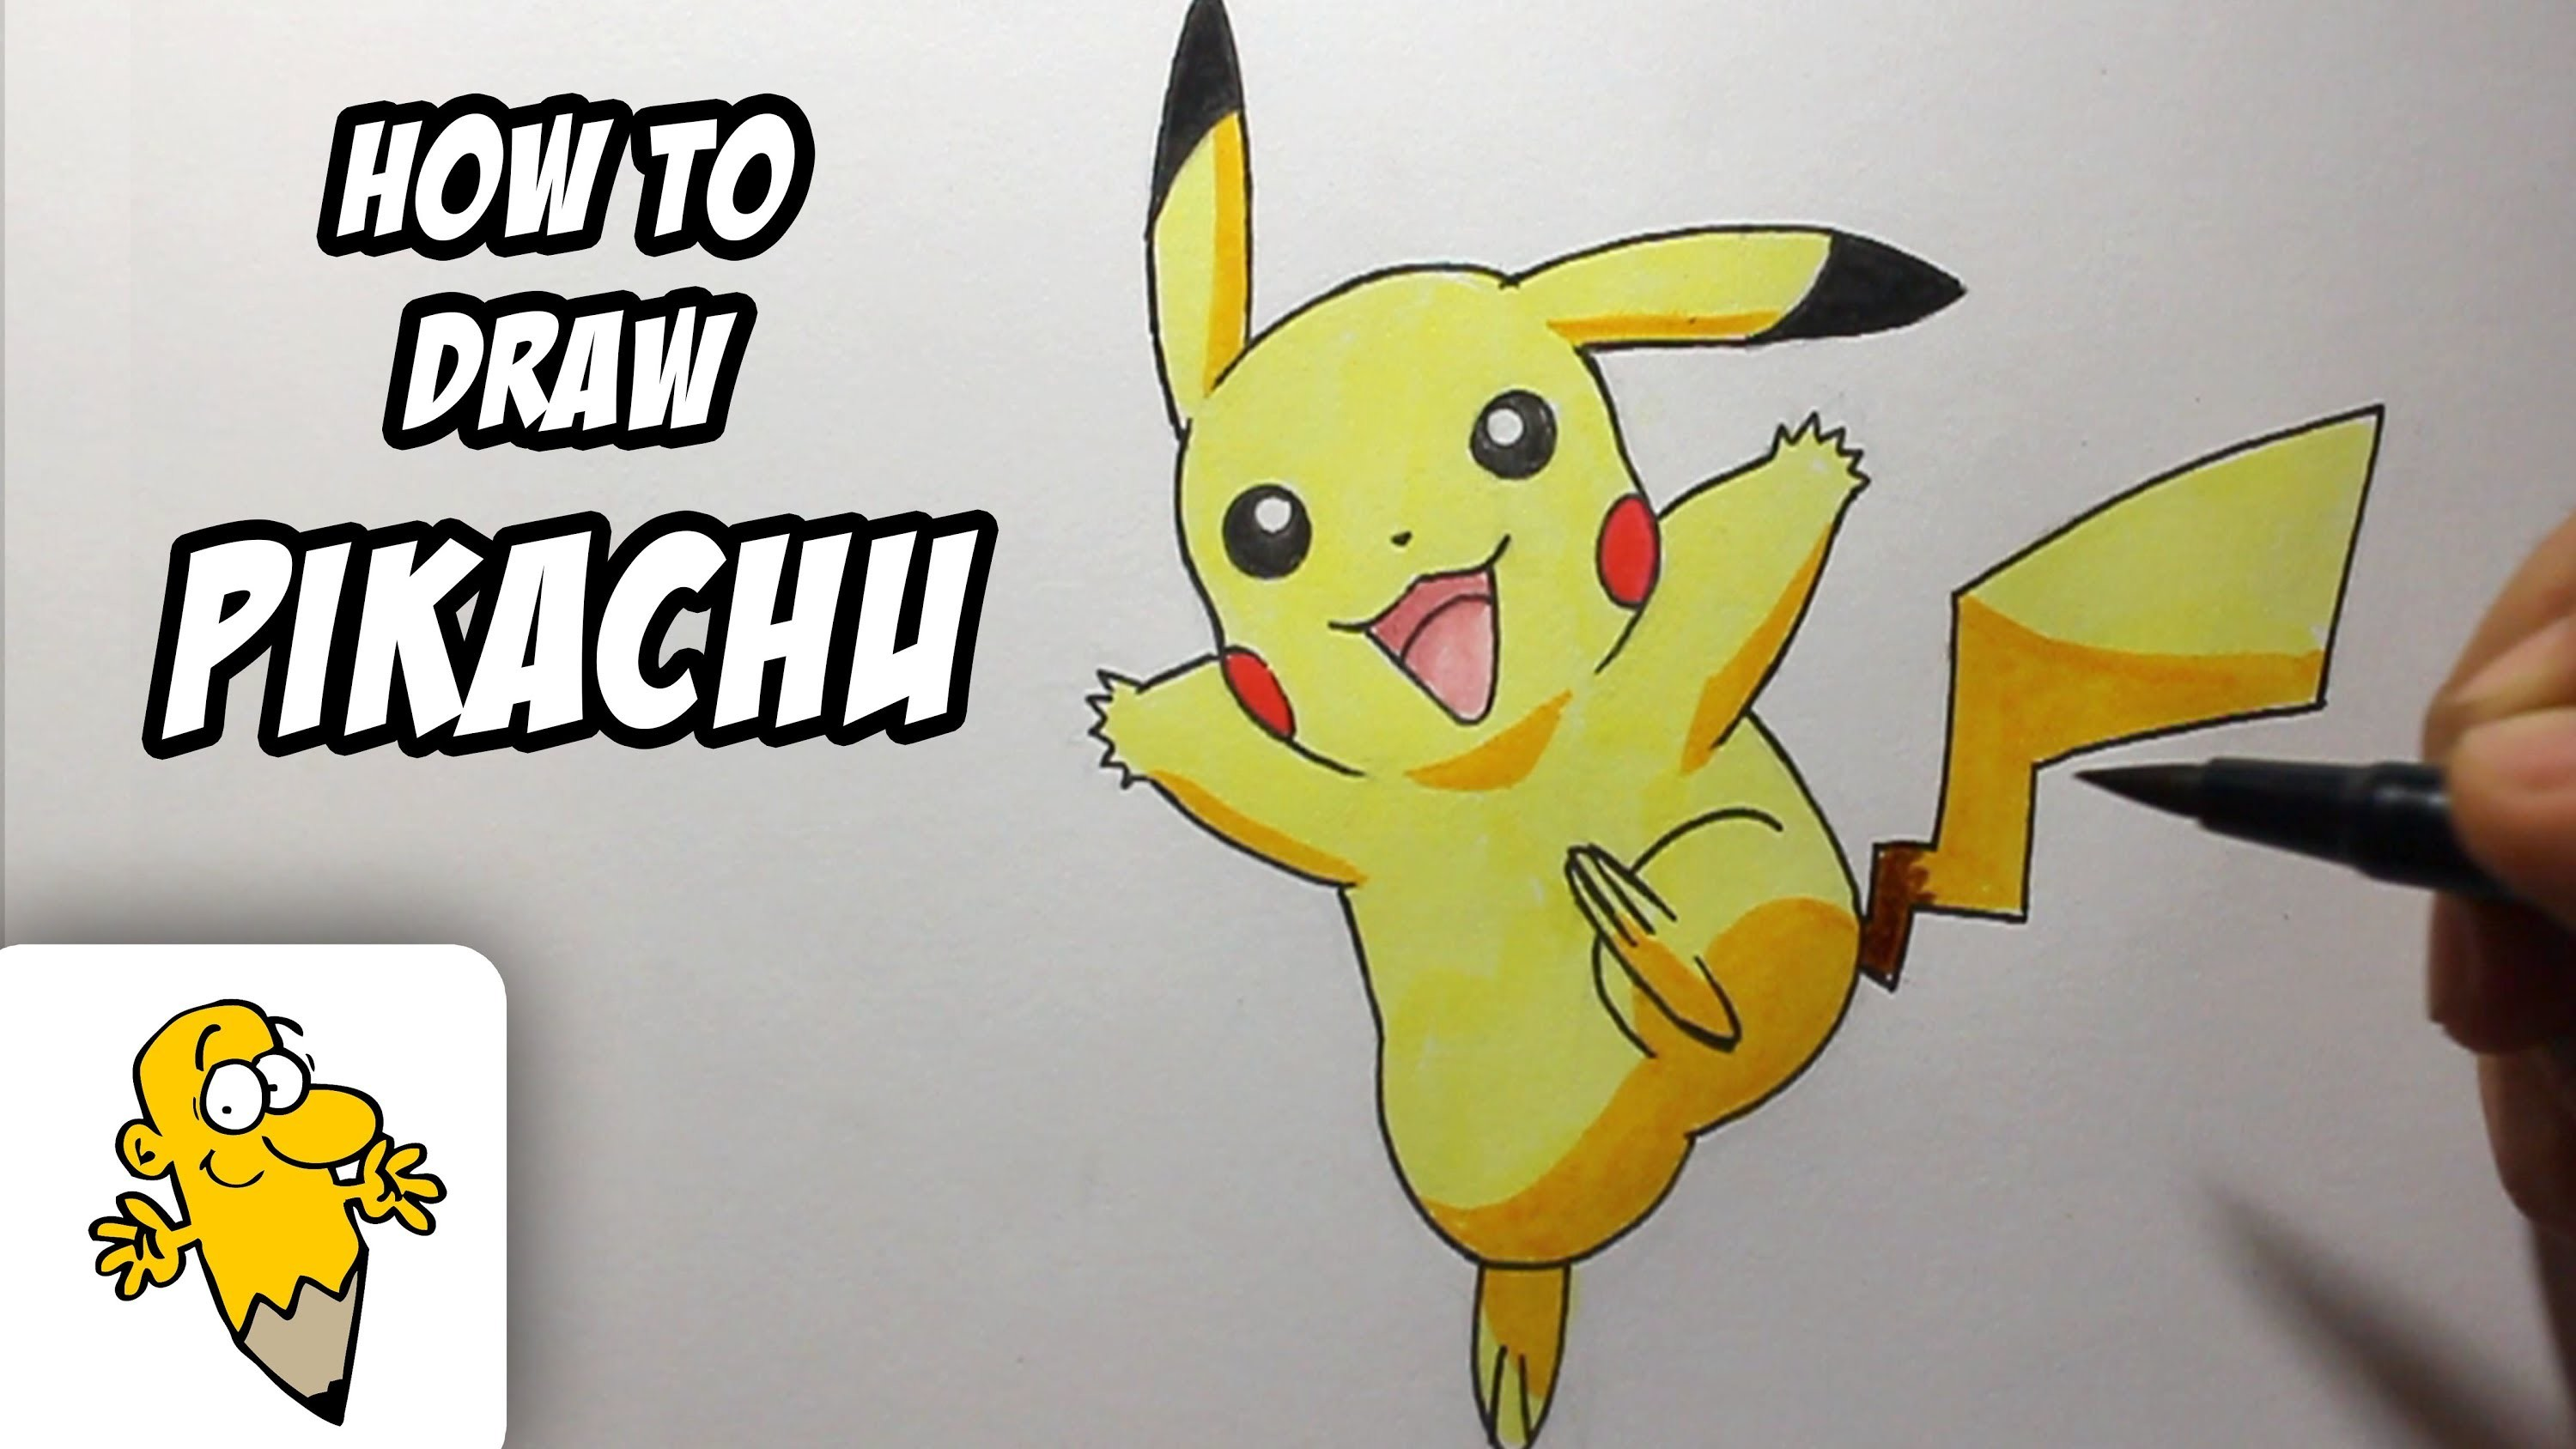 How to draw Pikachu [Pokemon] Drawing Tutorial